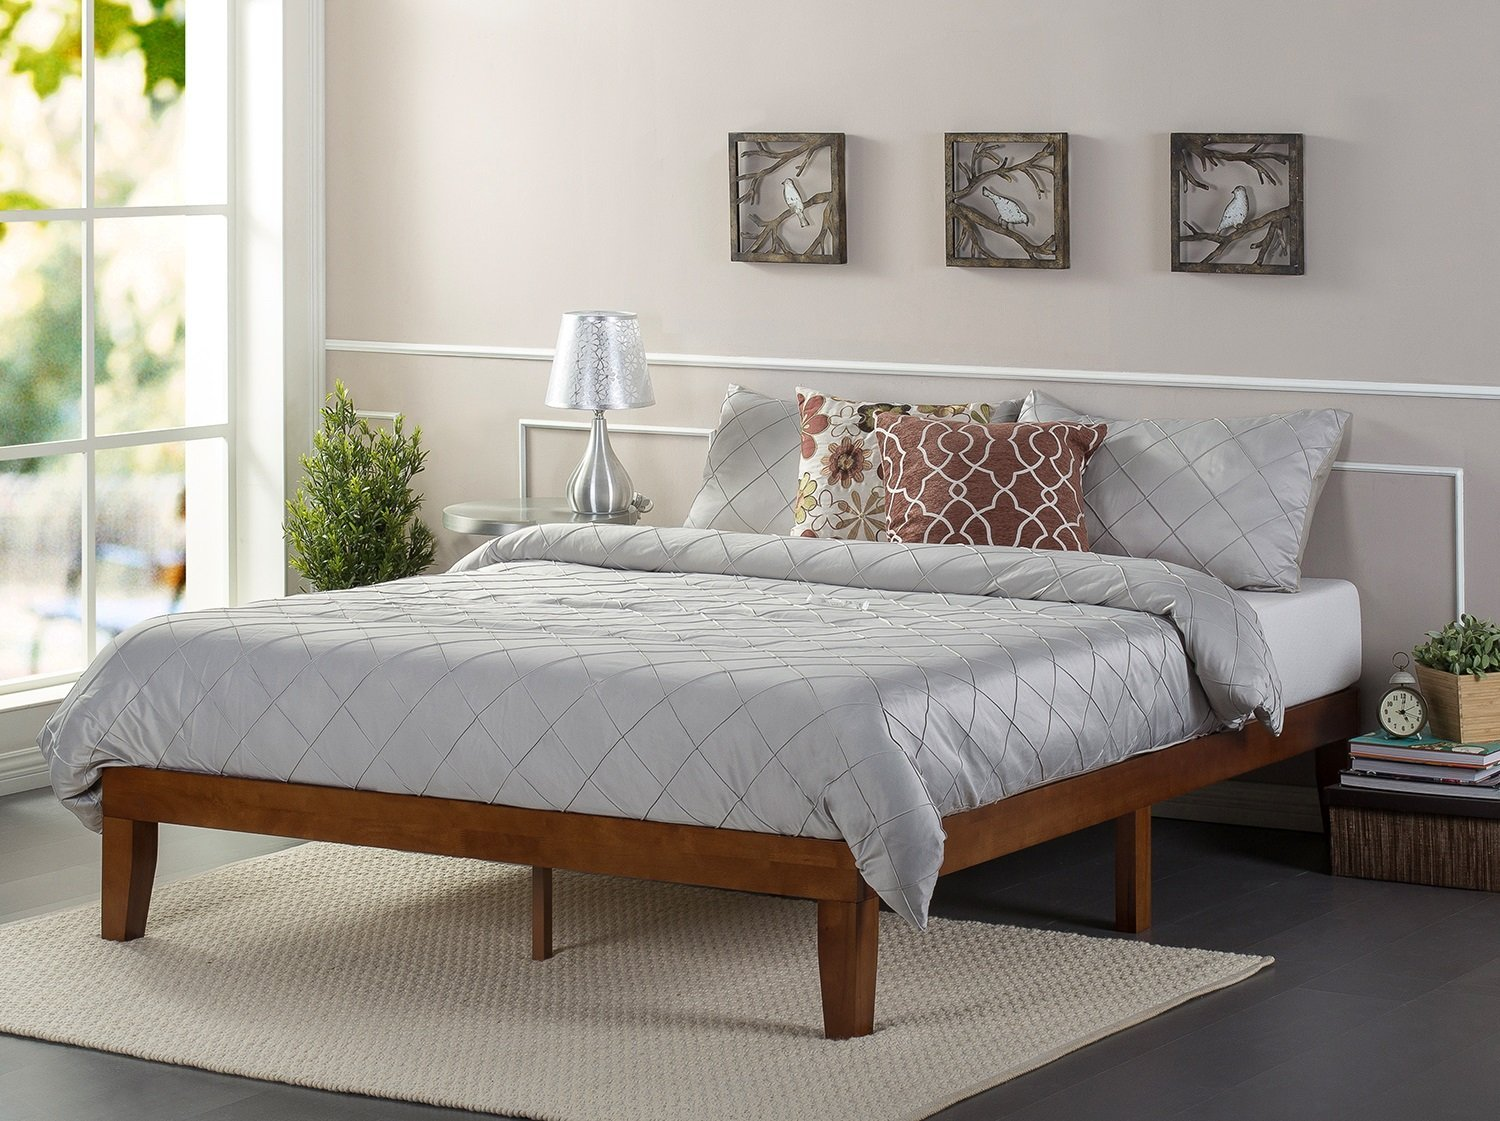 Zinus 12 Inch Deluxe Wood Platform Bed/No Boxspring Needed/Wood Slat Support/Cherry Finish, Twin AZ-SWPBB-12T